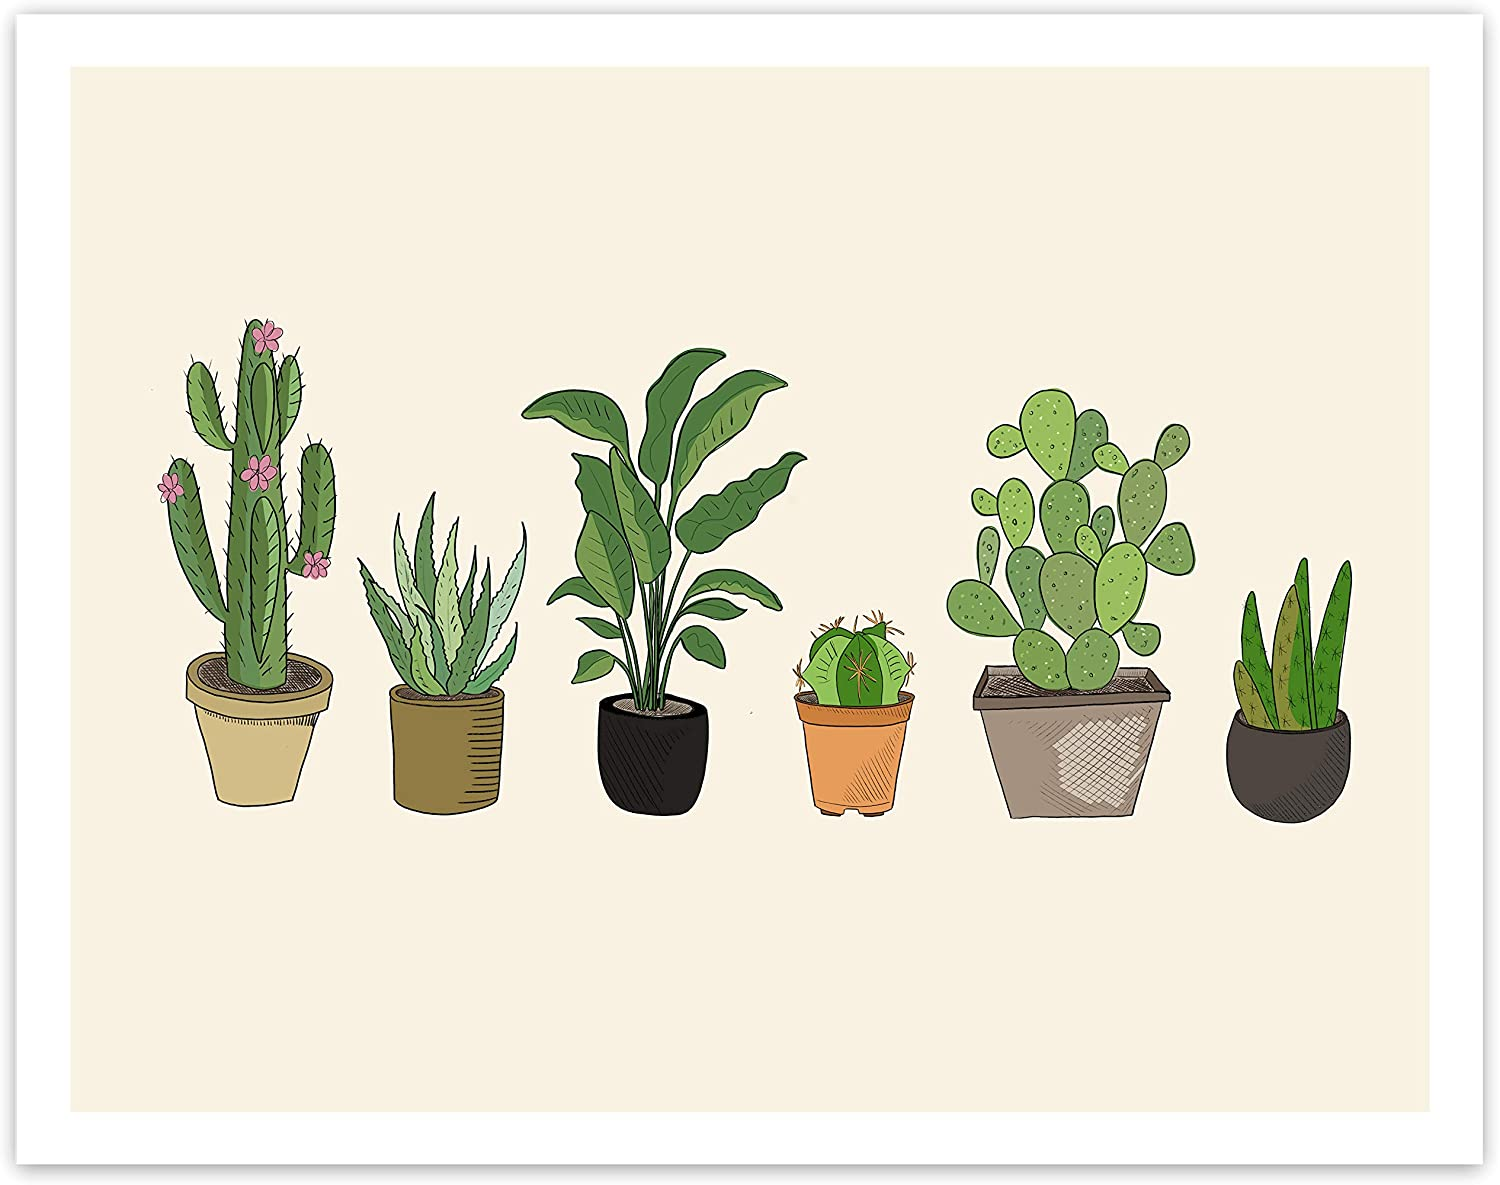 Printsmo, Potted Cactus and Succulents, Boho Minimalist Modern Art Print Poster, Contemporary Wall Art for Home Decor 11x14 inches, Unframed